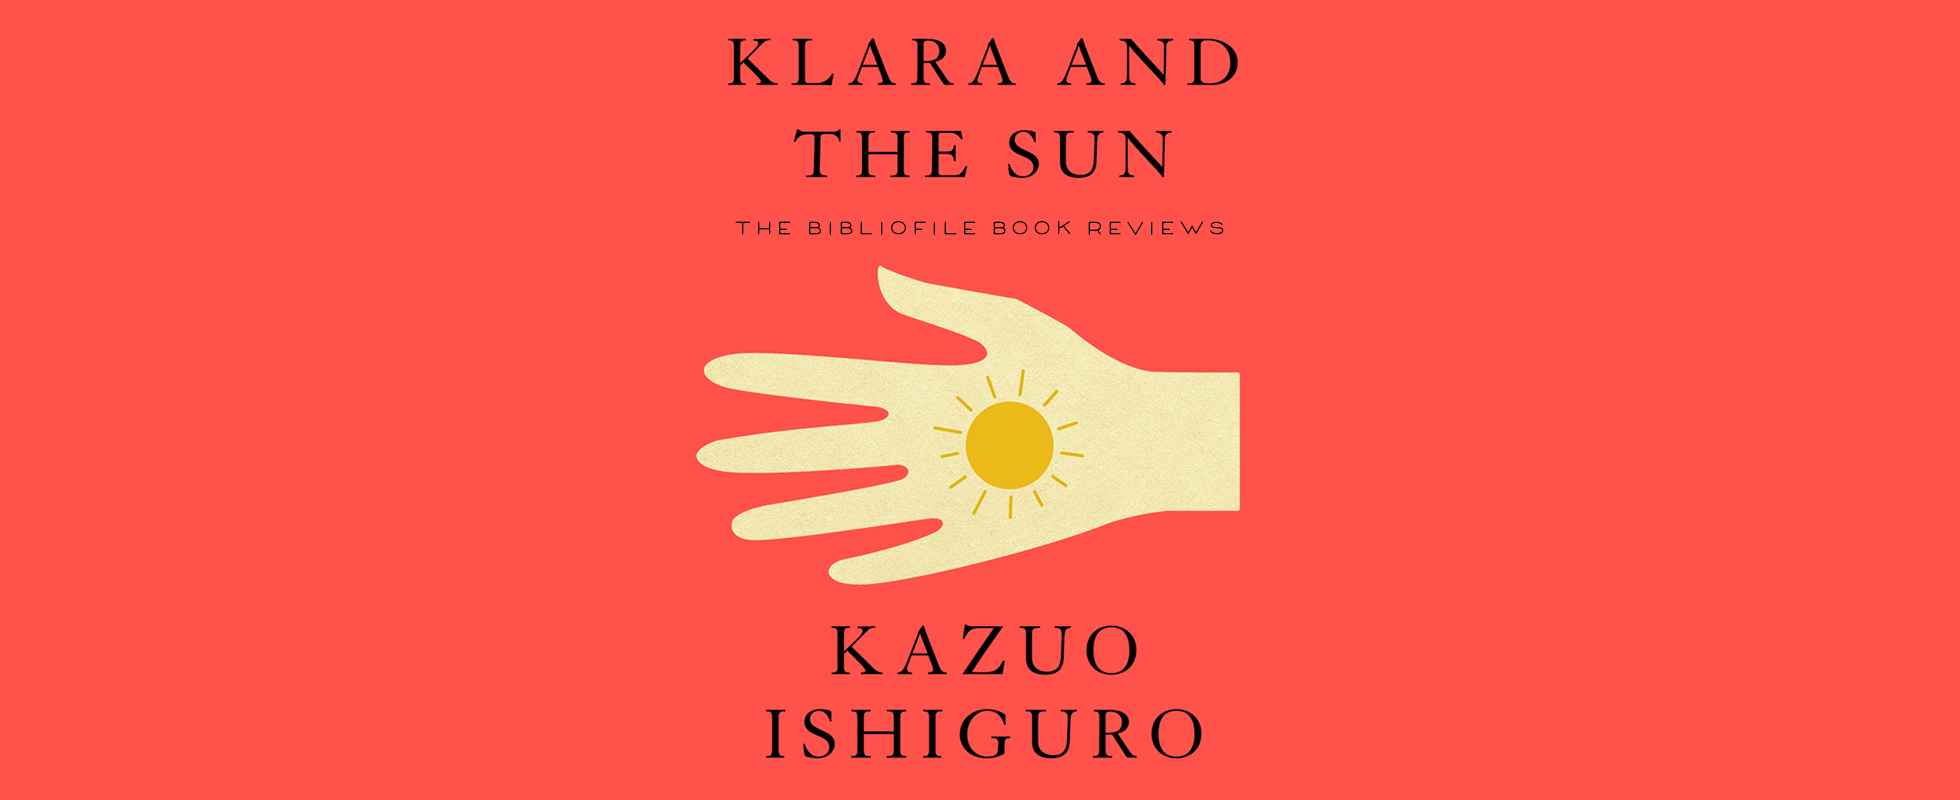 klara and the sun by kazuo ishiguro summary and review book recap synopsis analysis